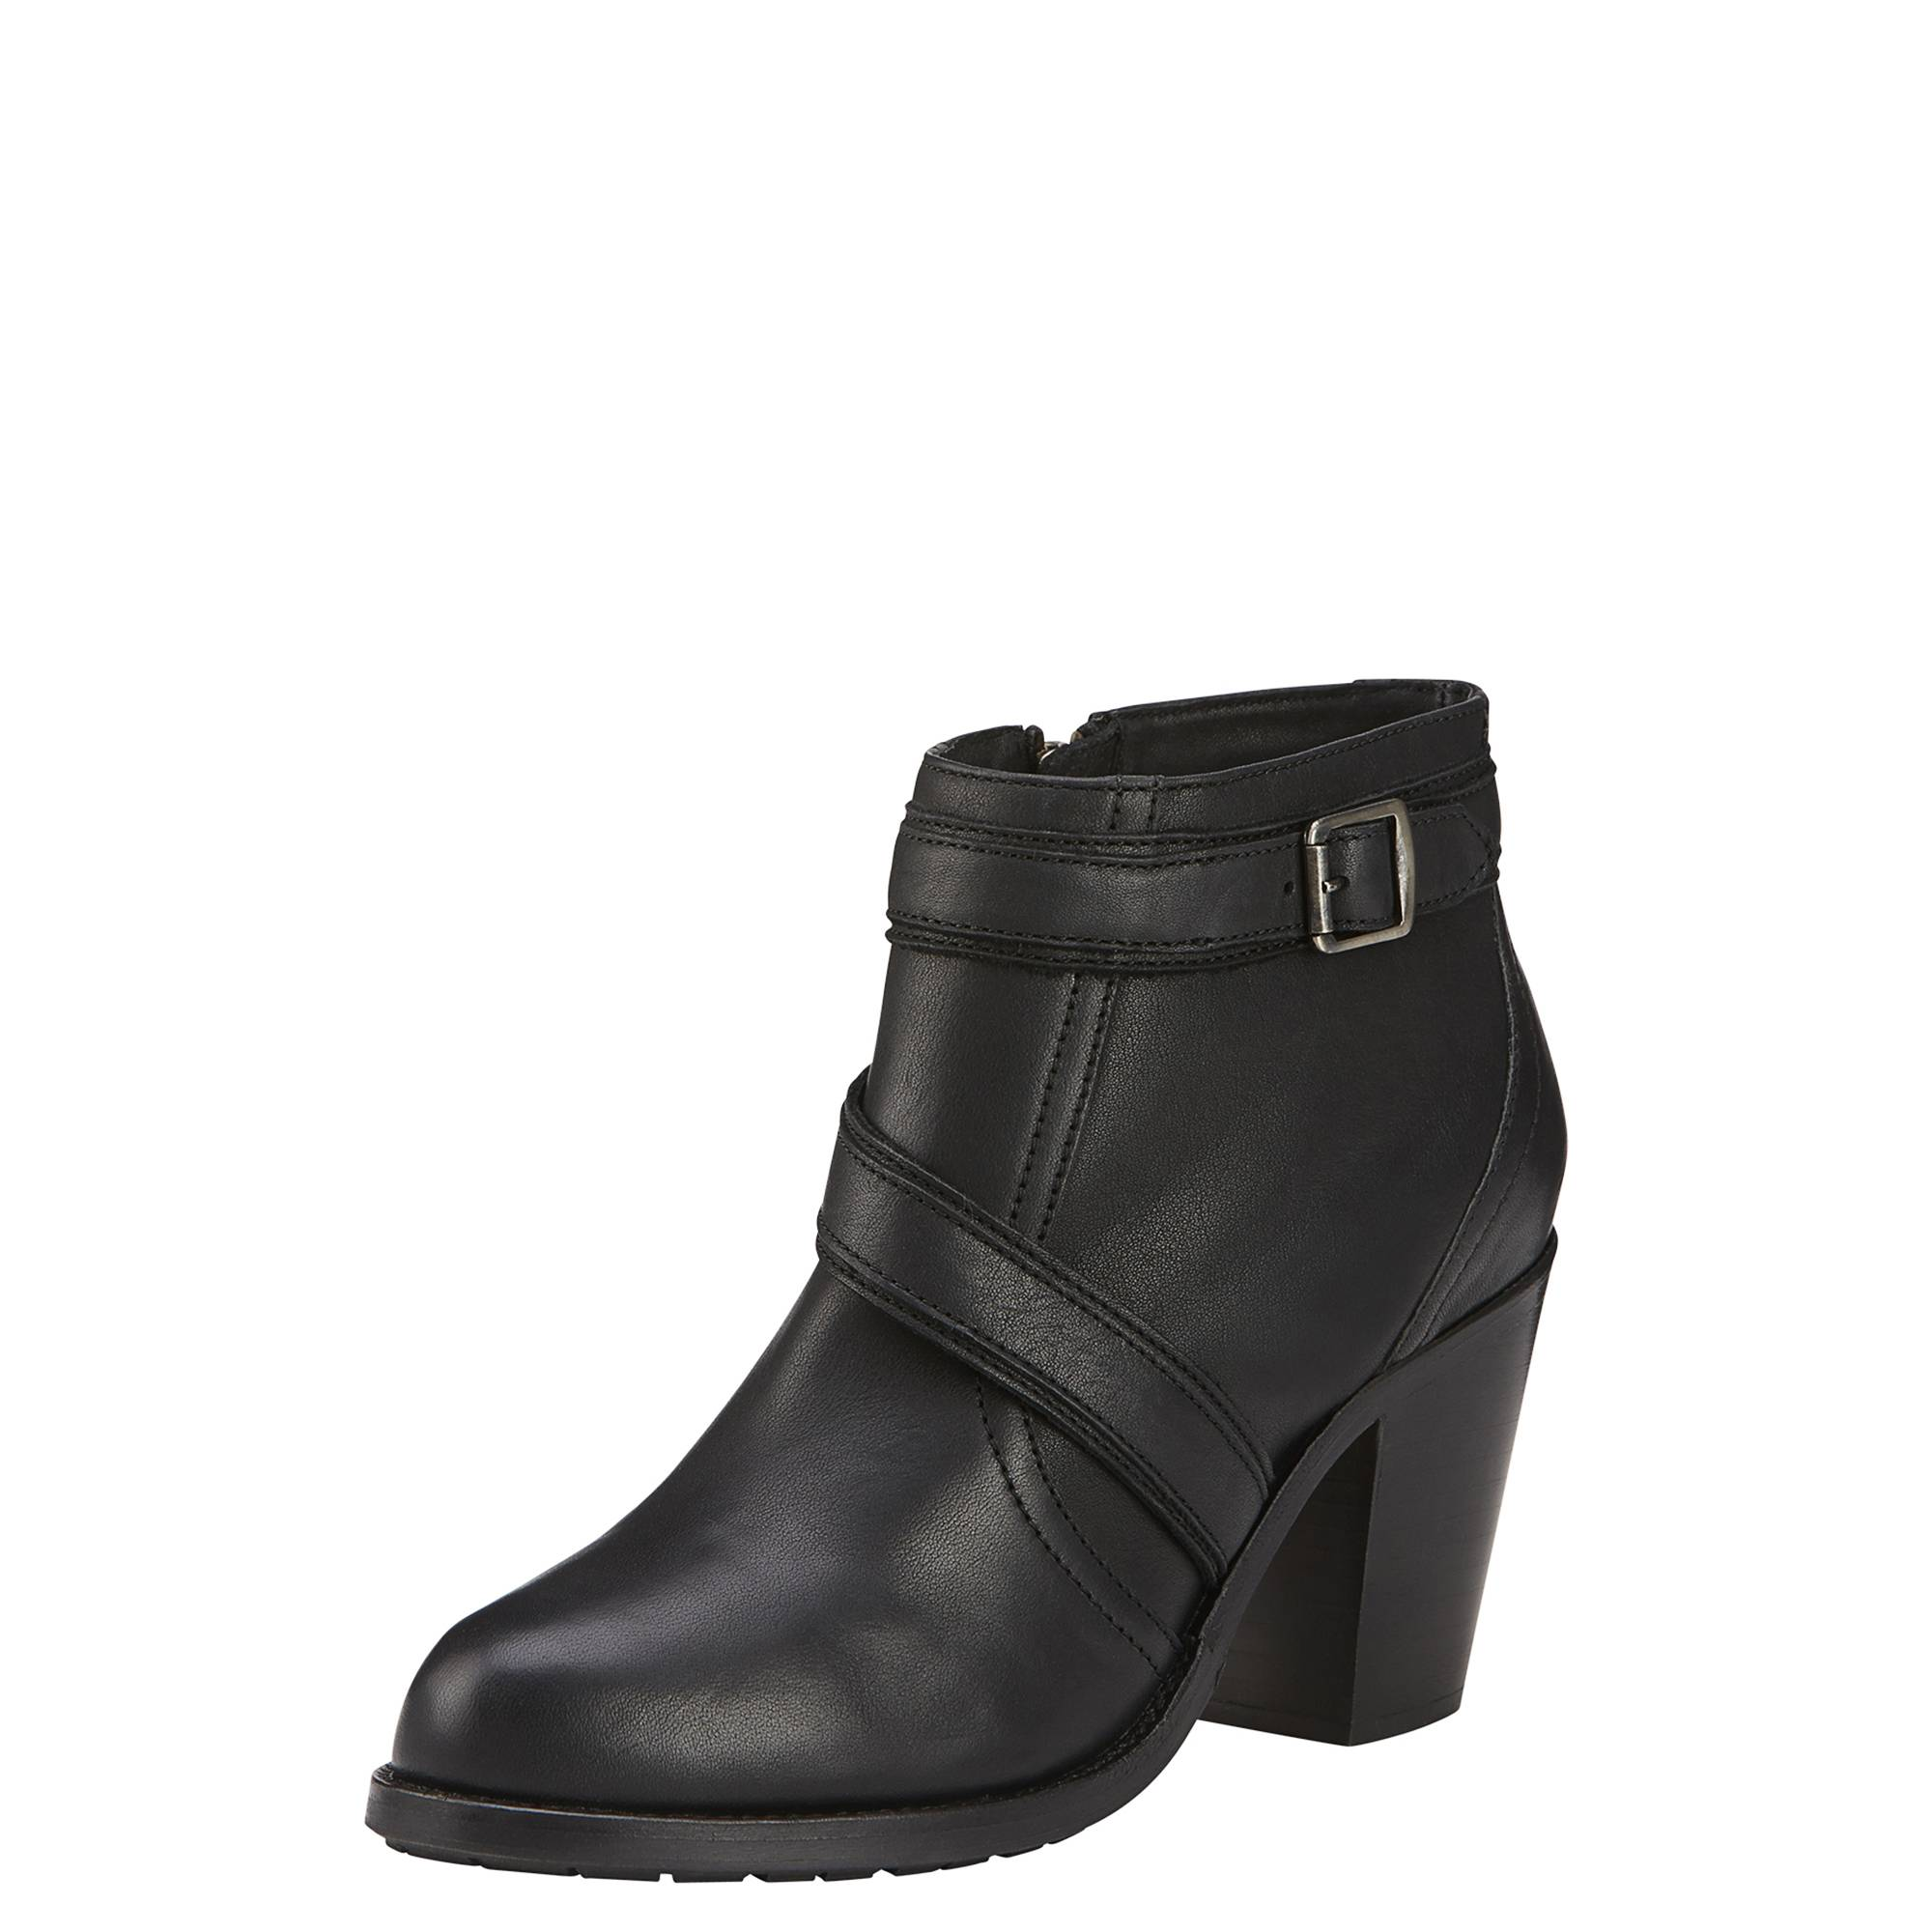 Ariat Ready To Go Fashion Boot -Black Carbon